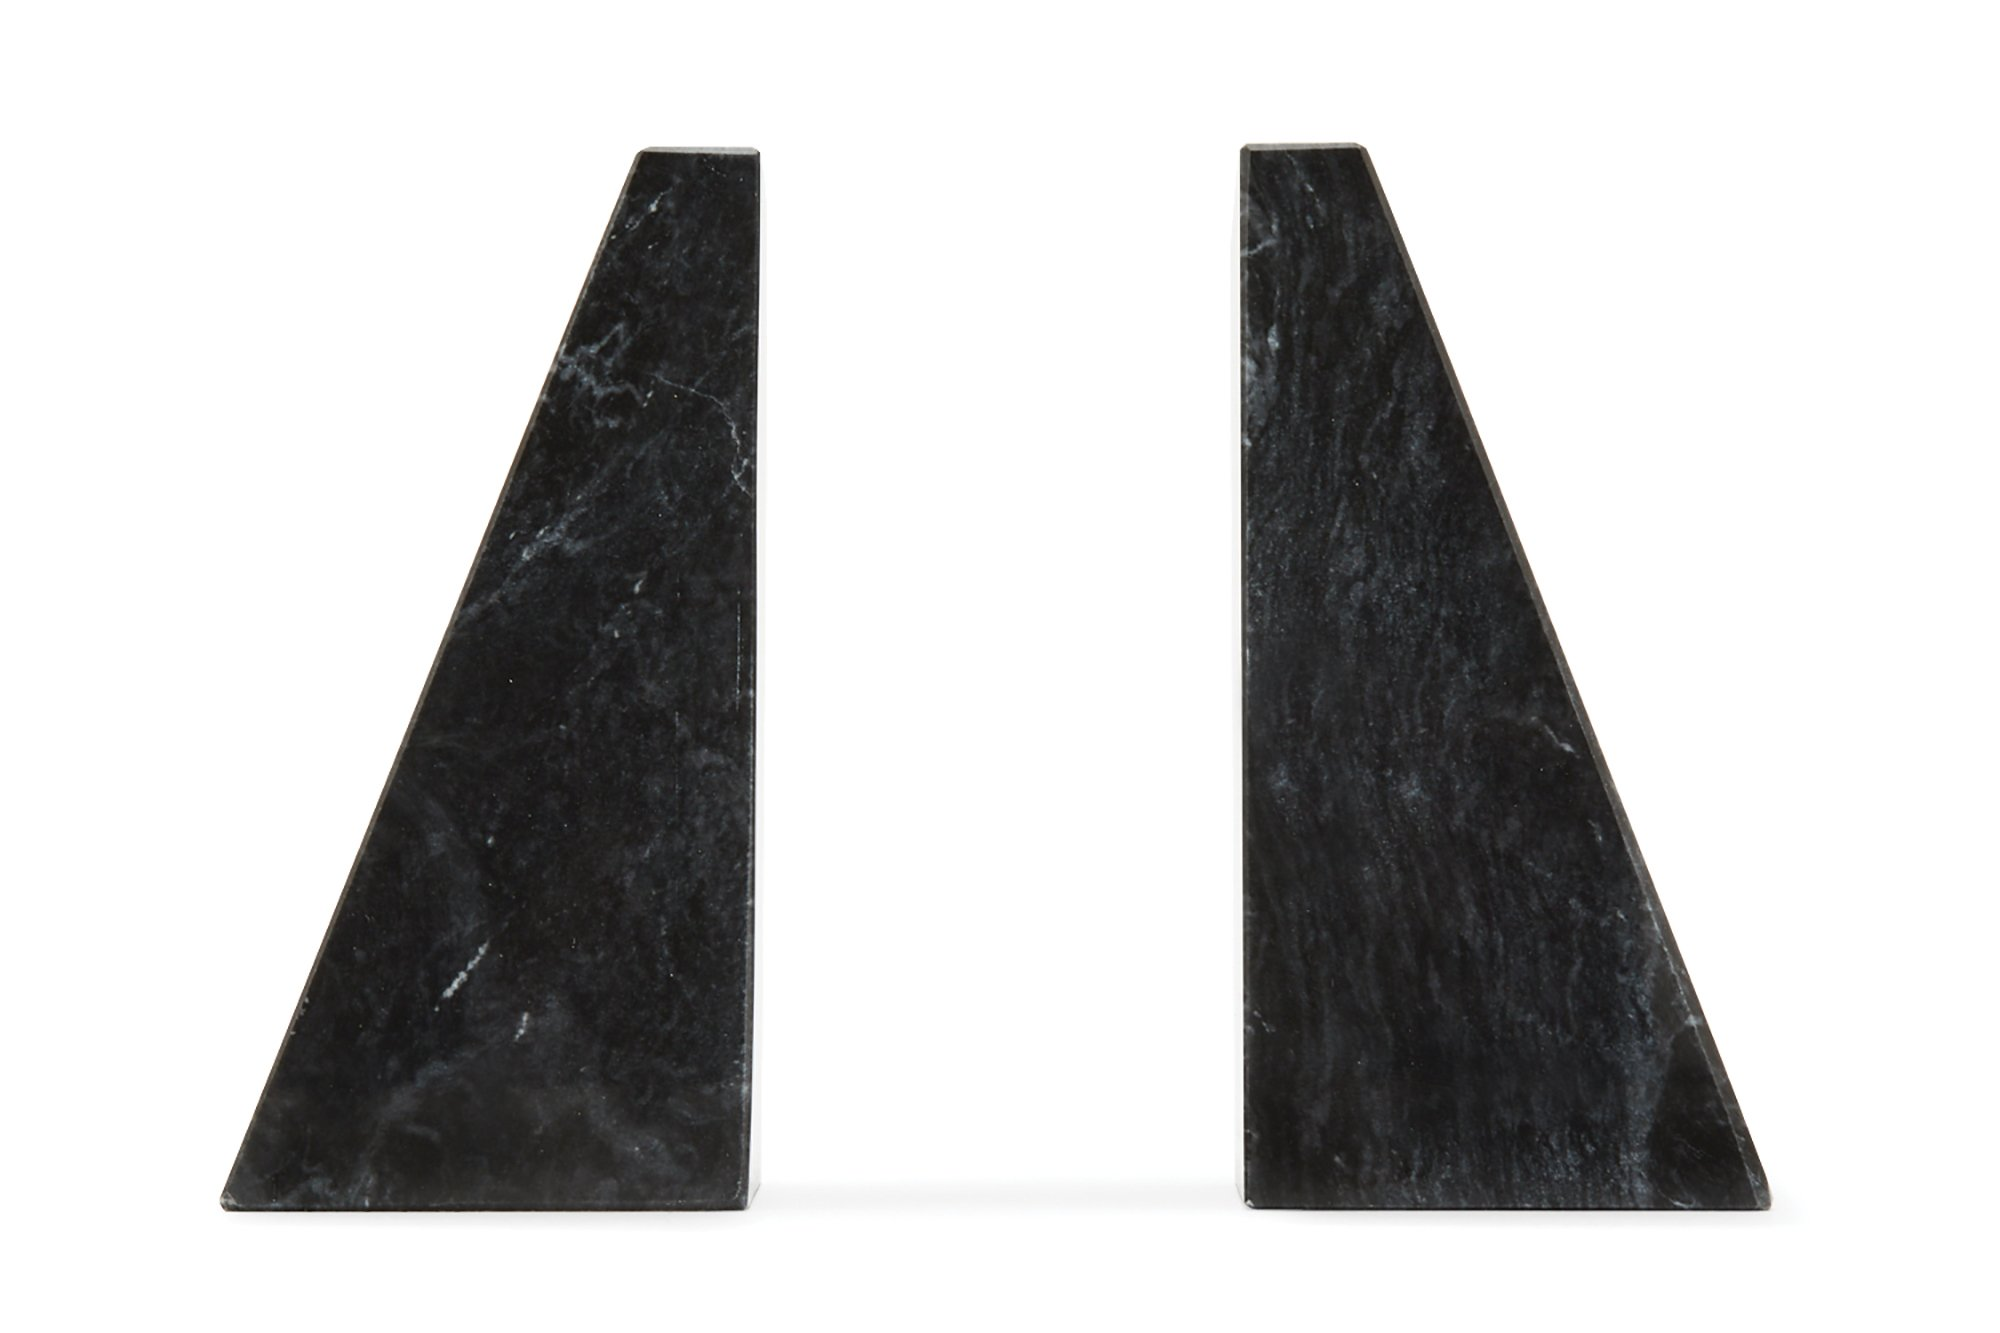 Fox Run Triangular 100% Natural Polished Black Marble Bookends by Fox Run (Image #2)